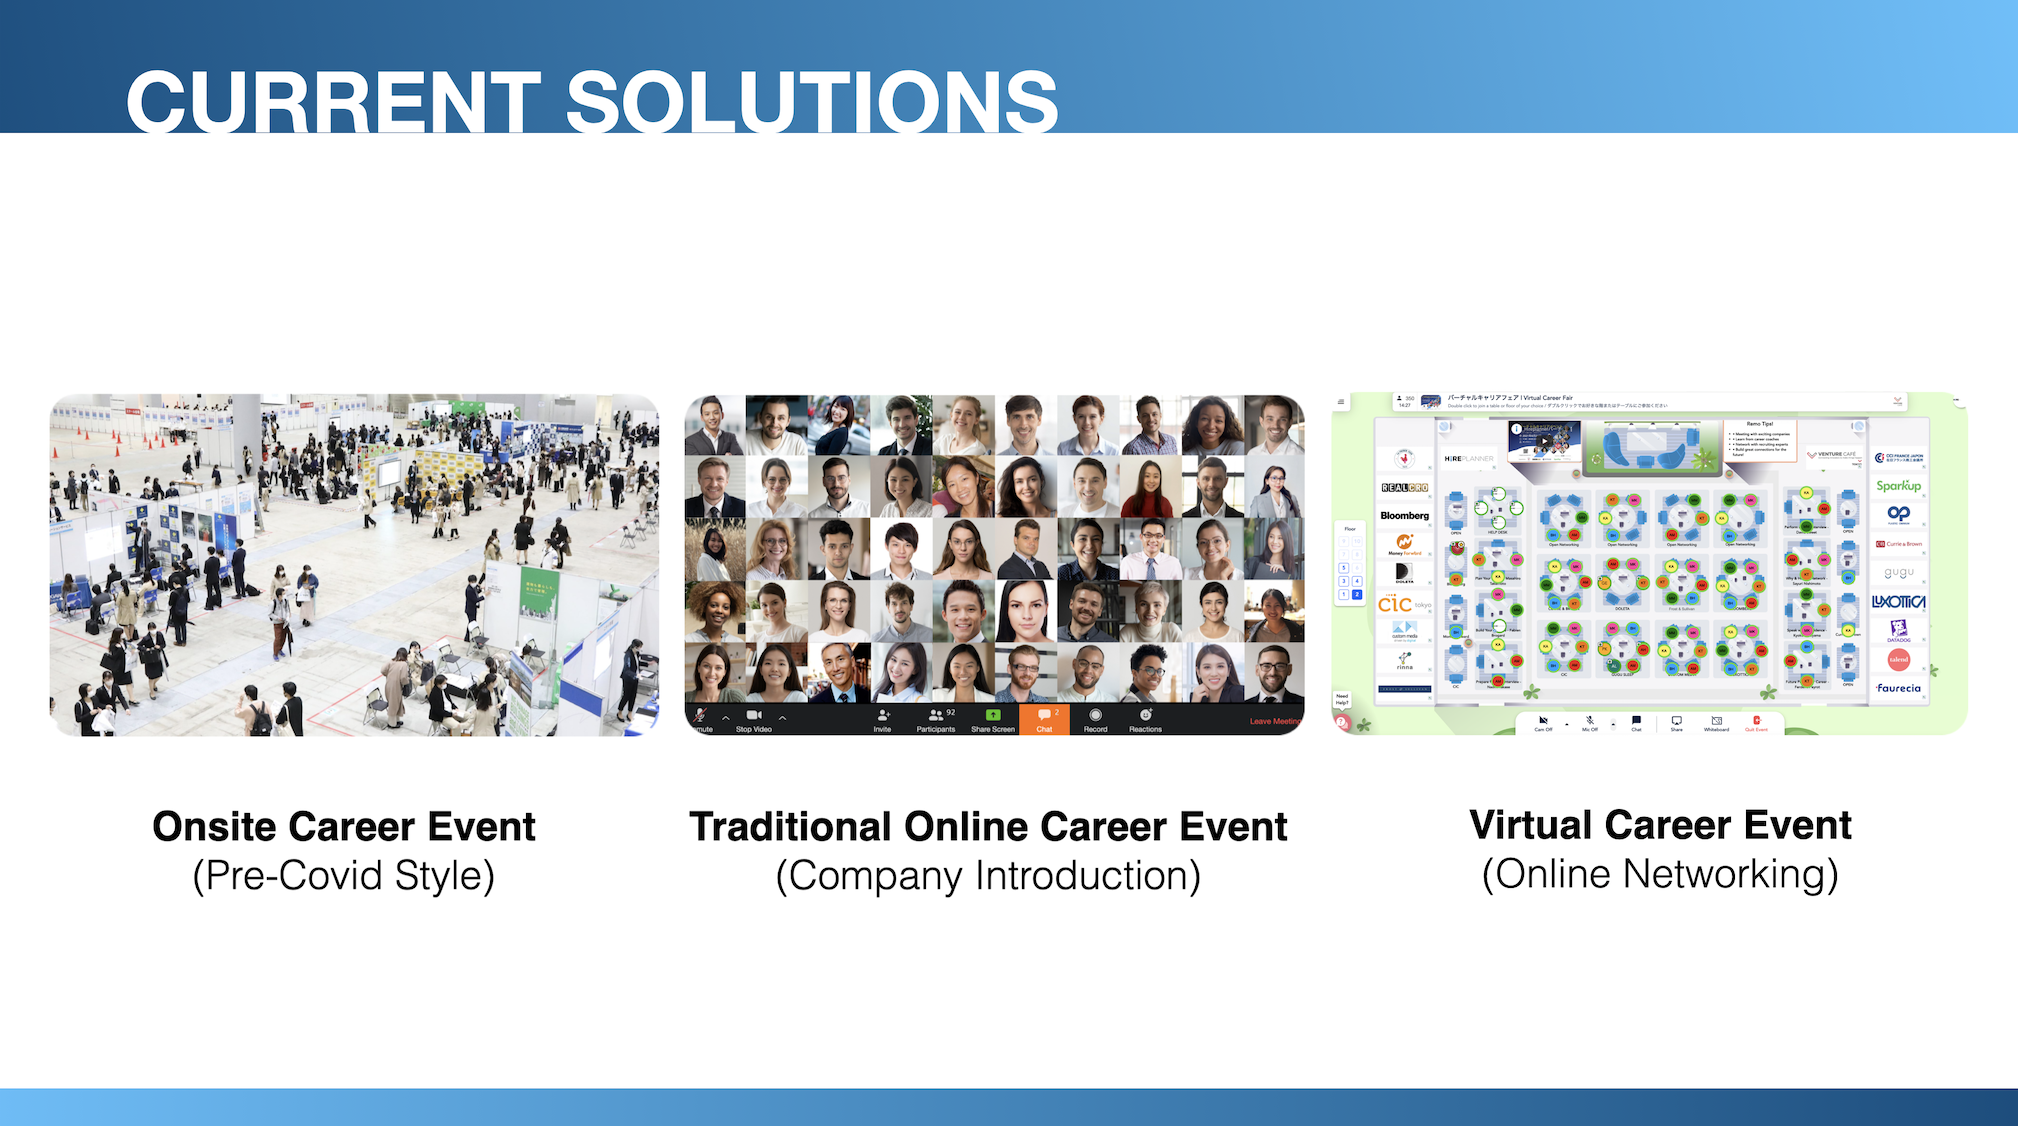 Japan HR Event – How to attract talent at Virtual Career Events (Video)